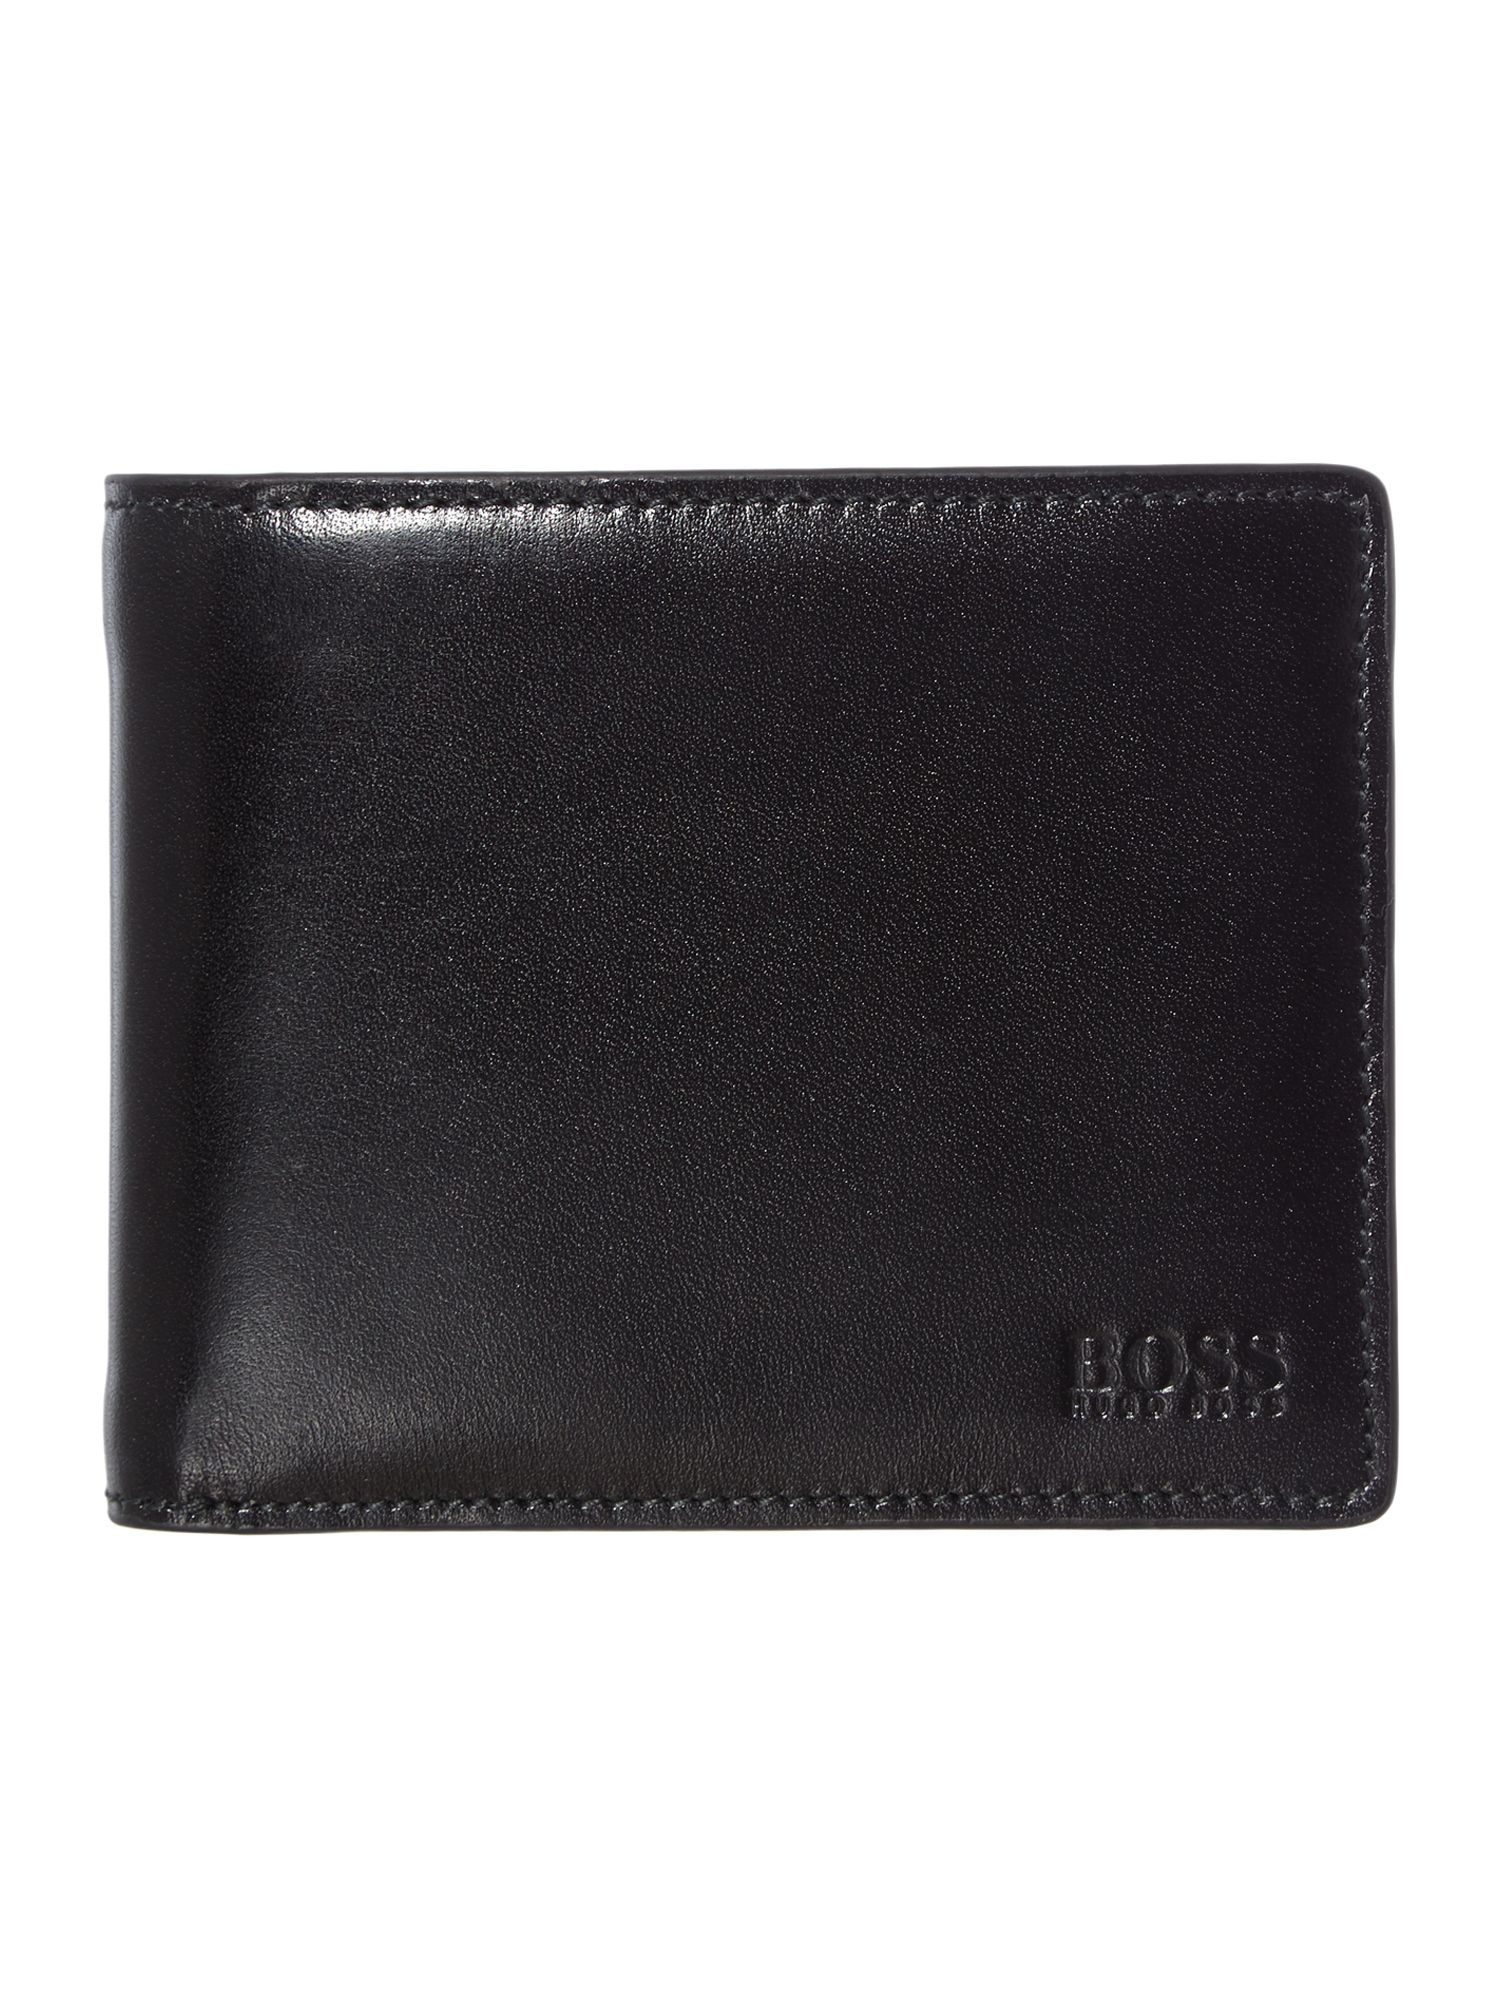 Wallet and card holder giftbox